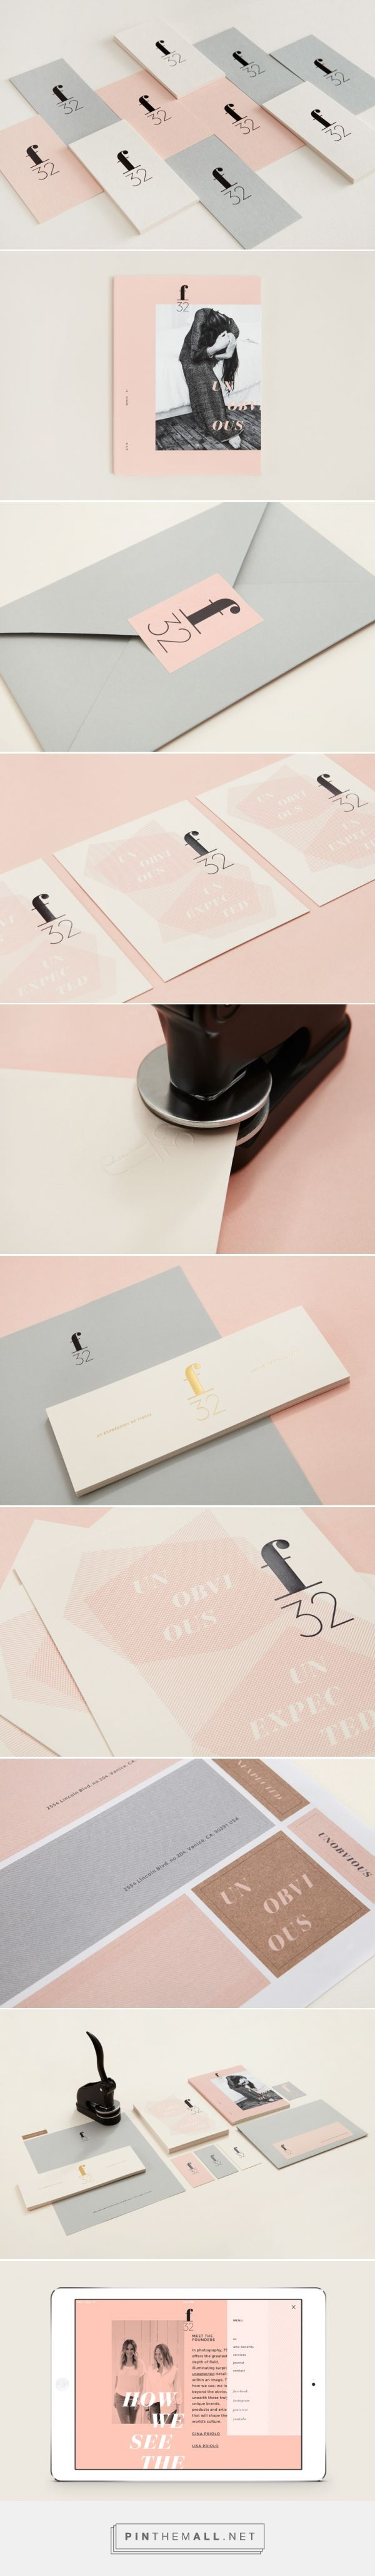 branding corporate identity stationary minimalistic graphic design sticker business card letterhead magazine cover website